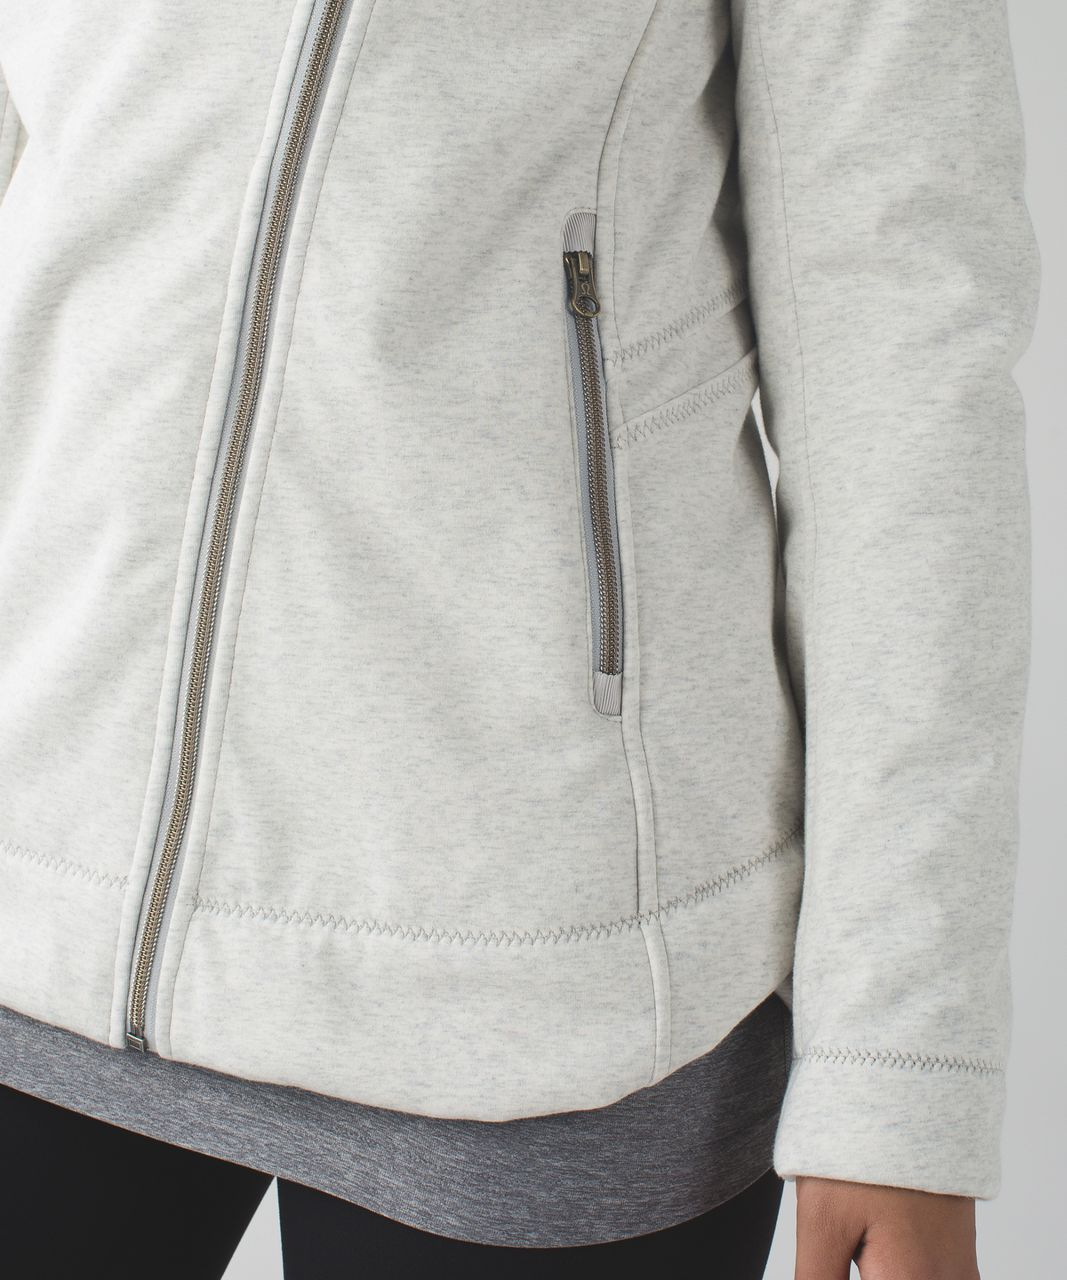 Lululemon Cozy Up Buttercup Jacket - Heathered Silver Spoon